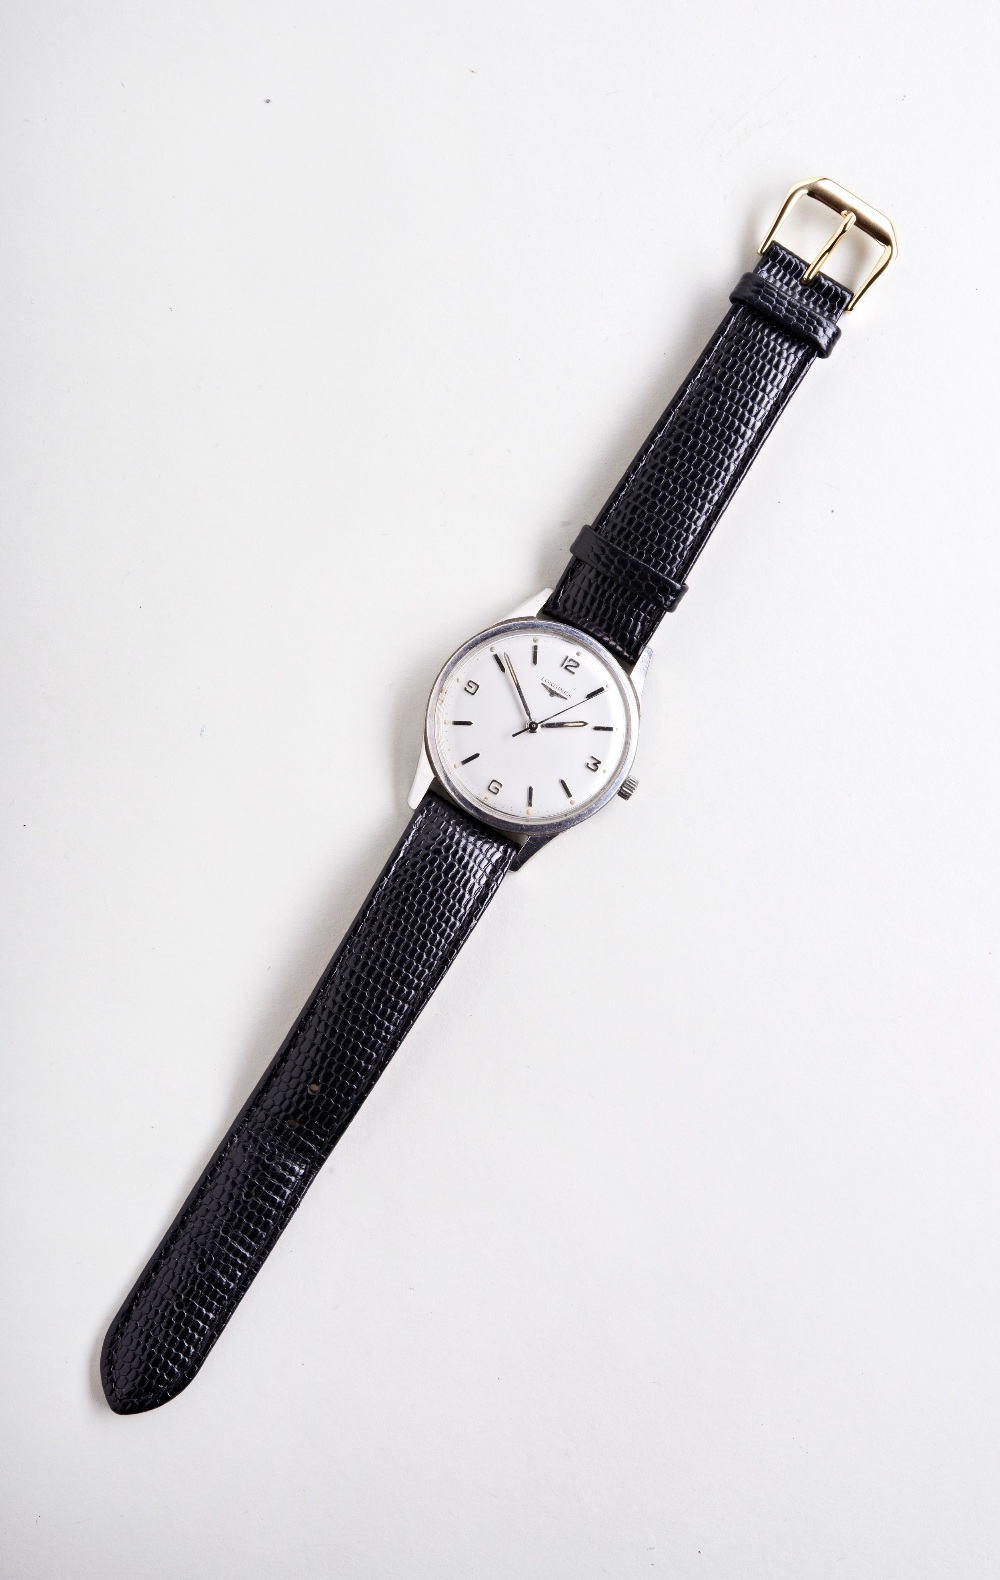 LONGINES STEEL WRISTWATCH, c1960, silver dial with Arabic and baton numerals and later lizard/calf - Image 2 of 3